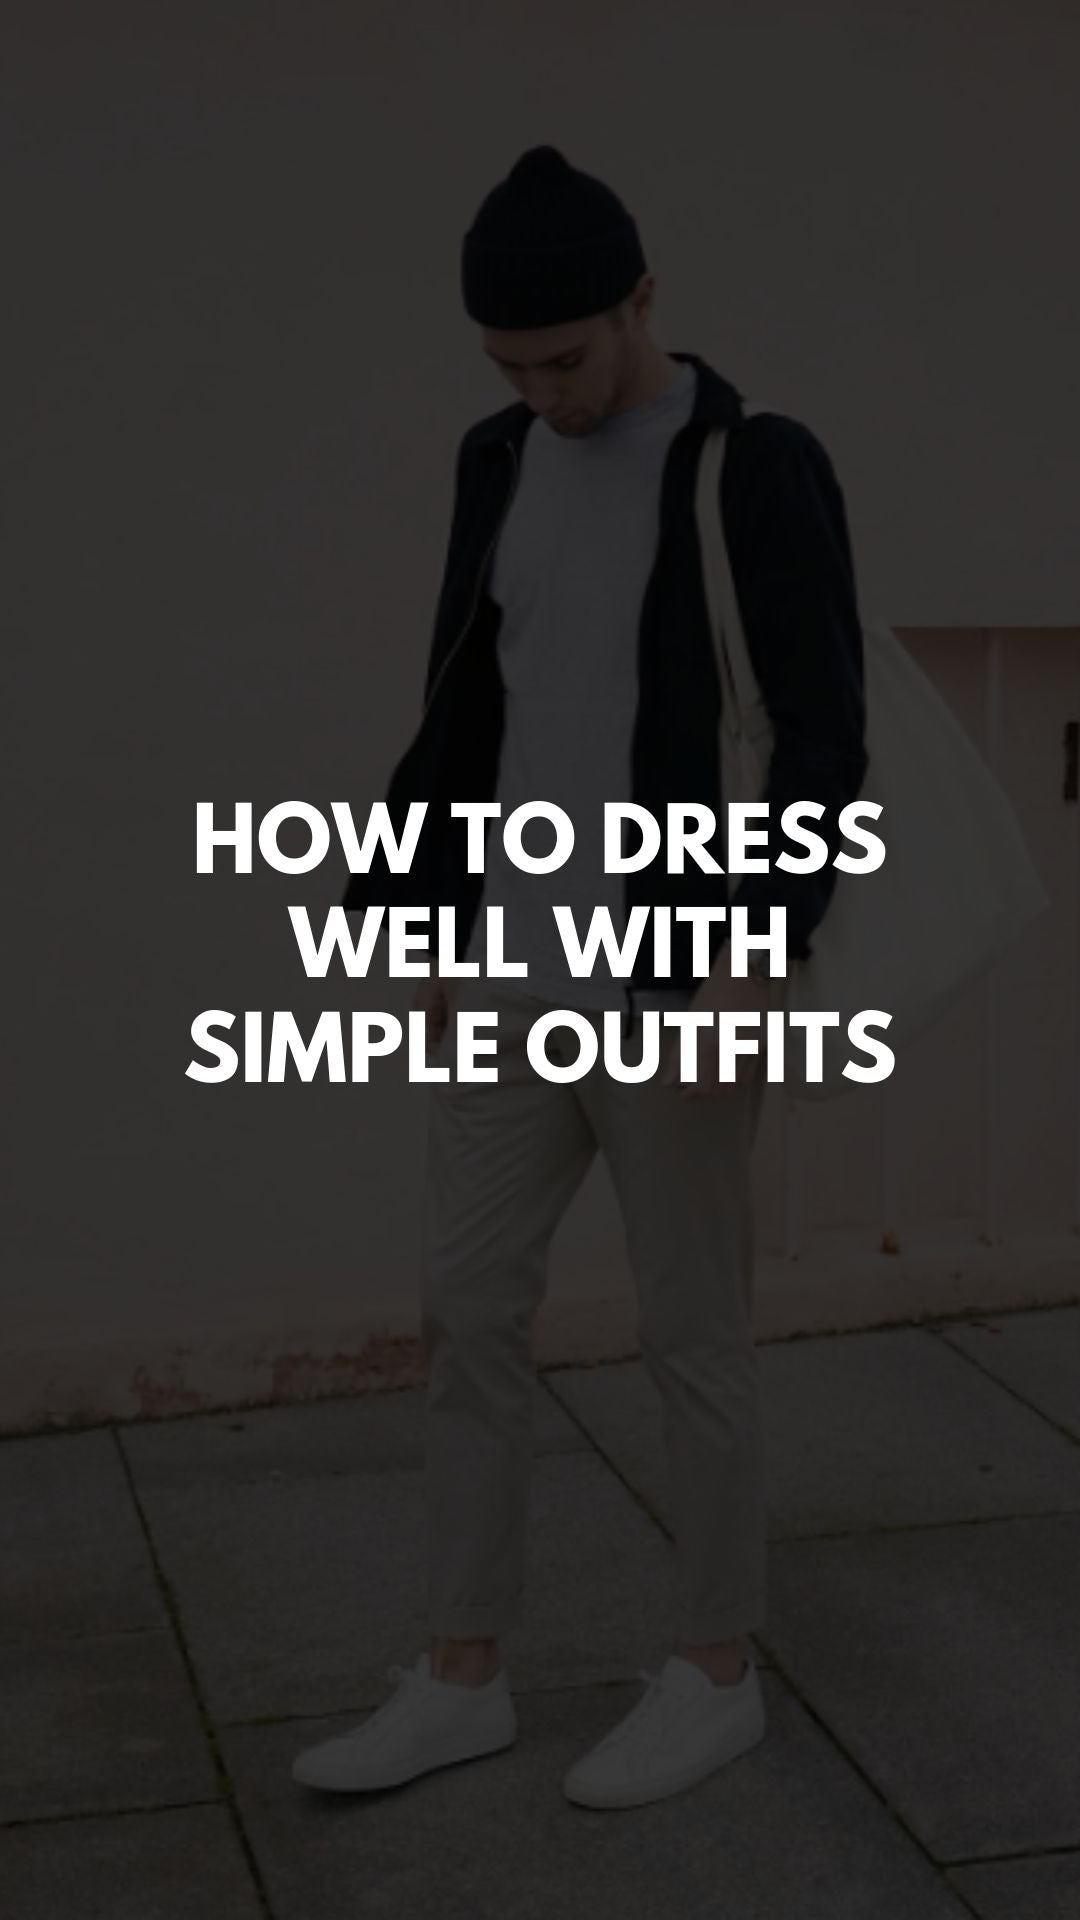 Simple outfit ideas for men #mensfashion #simplestyle #simpleoutfits